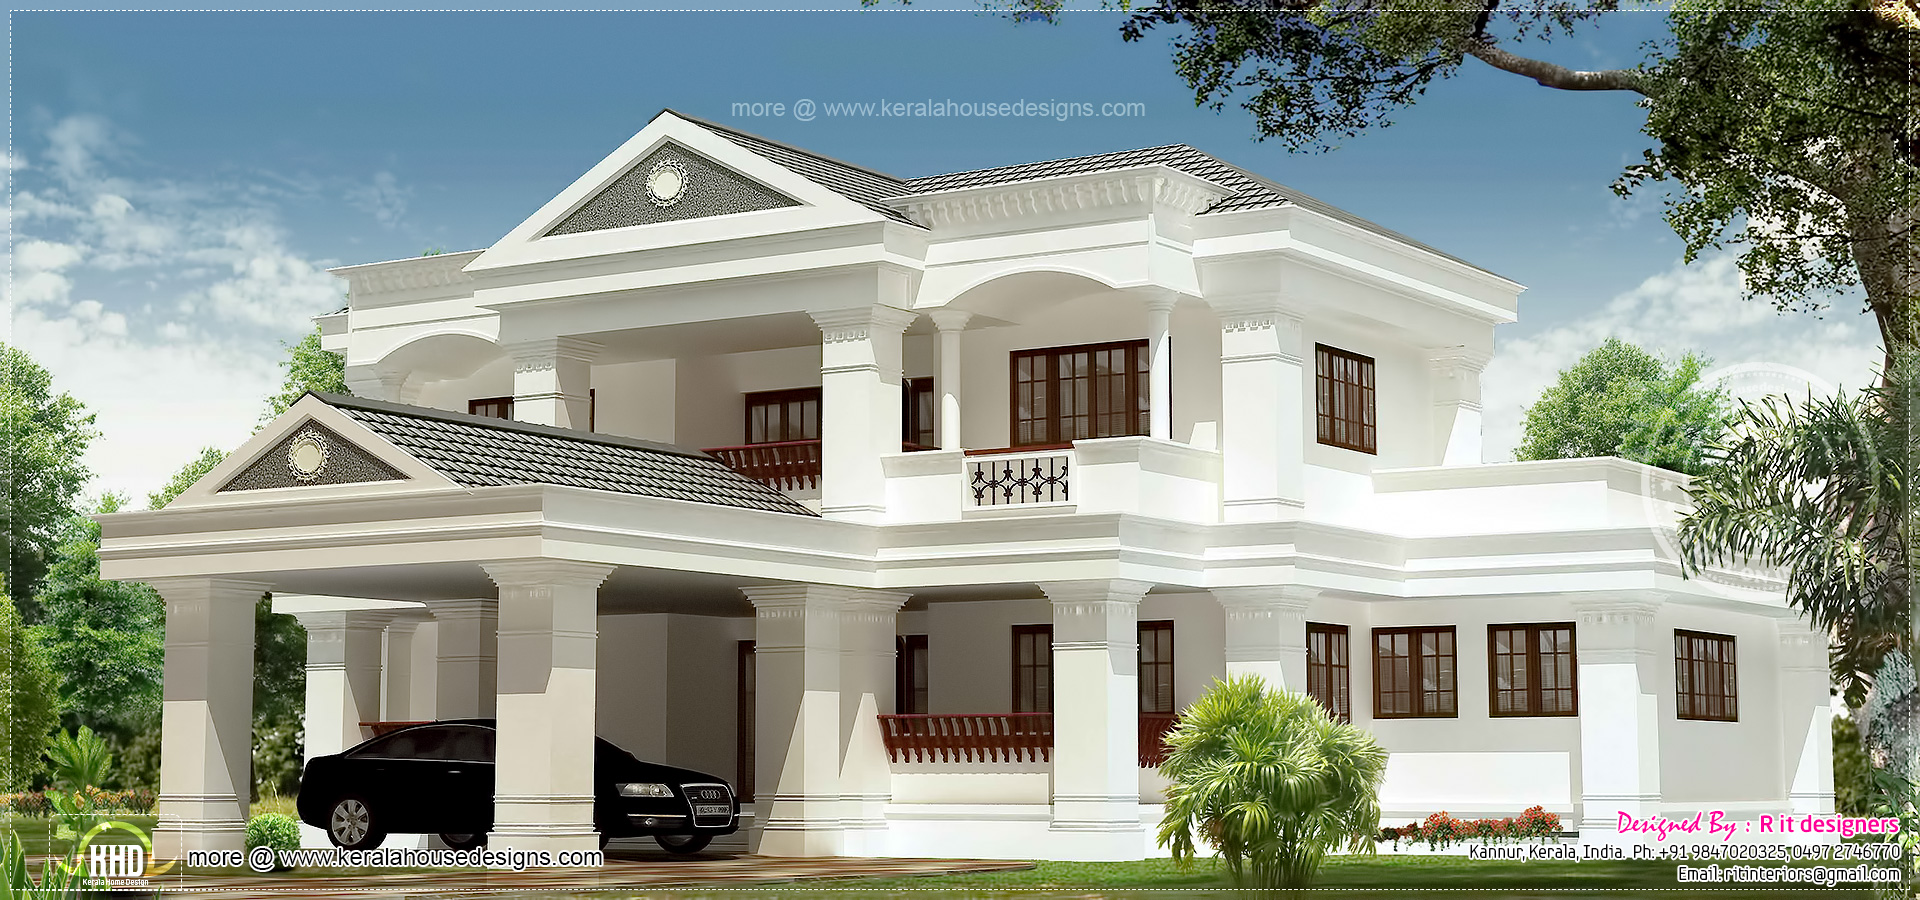 Architectural home plans » luxury sq ft home plans under | Victorian on fireplace designs, 2 bedroom home designs, modern kitchen designs, 5 bedroom prefabricated homes, 6 bedroom home designs, 4 bedroom home designs, one bedroom home designs, 3 bedroom home designs, 5 bedroom prefab homes, 7 bedroom home designs, 5 bedroom plans,